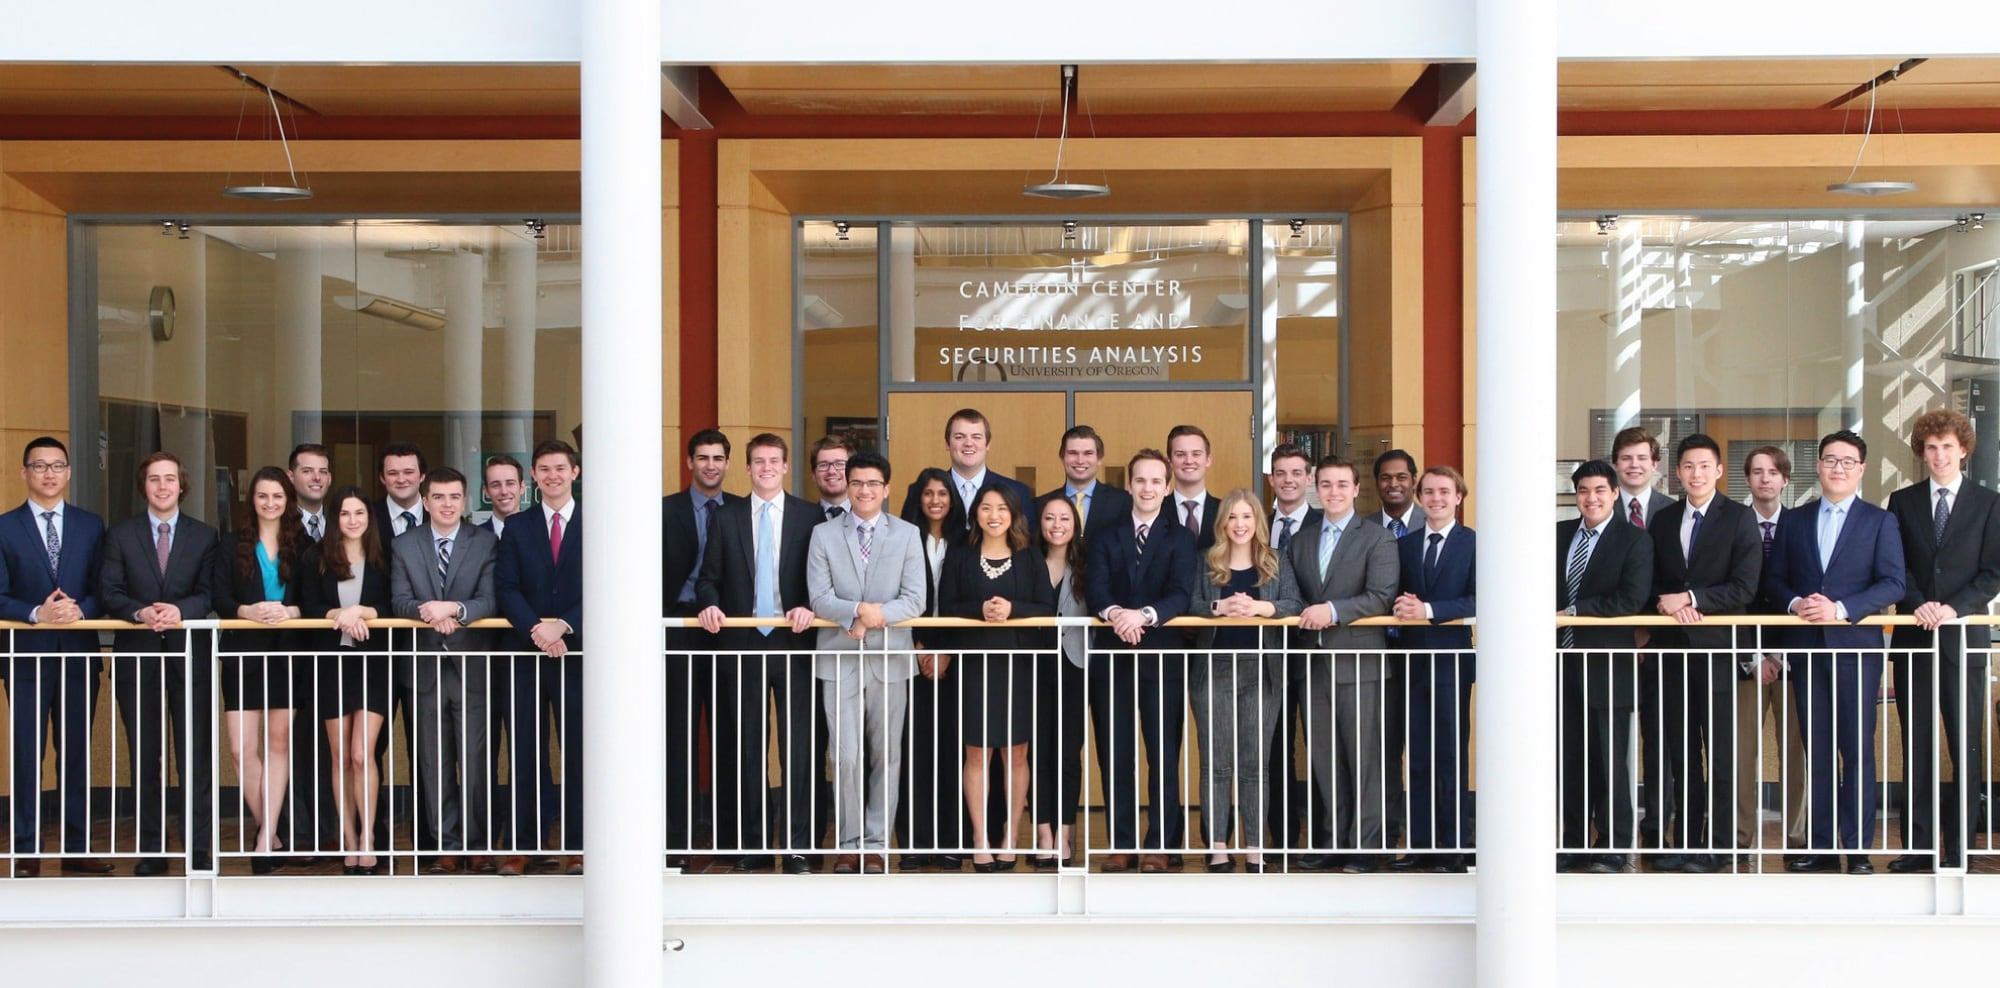 Large gathering of UO Investment Group students stand in front of the Cameron Center for Finance and Securities Analysis in the Lillis Business Complex.